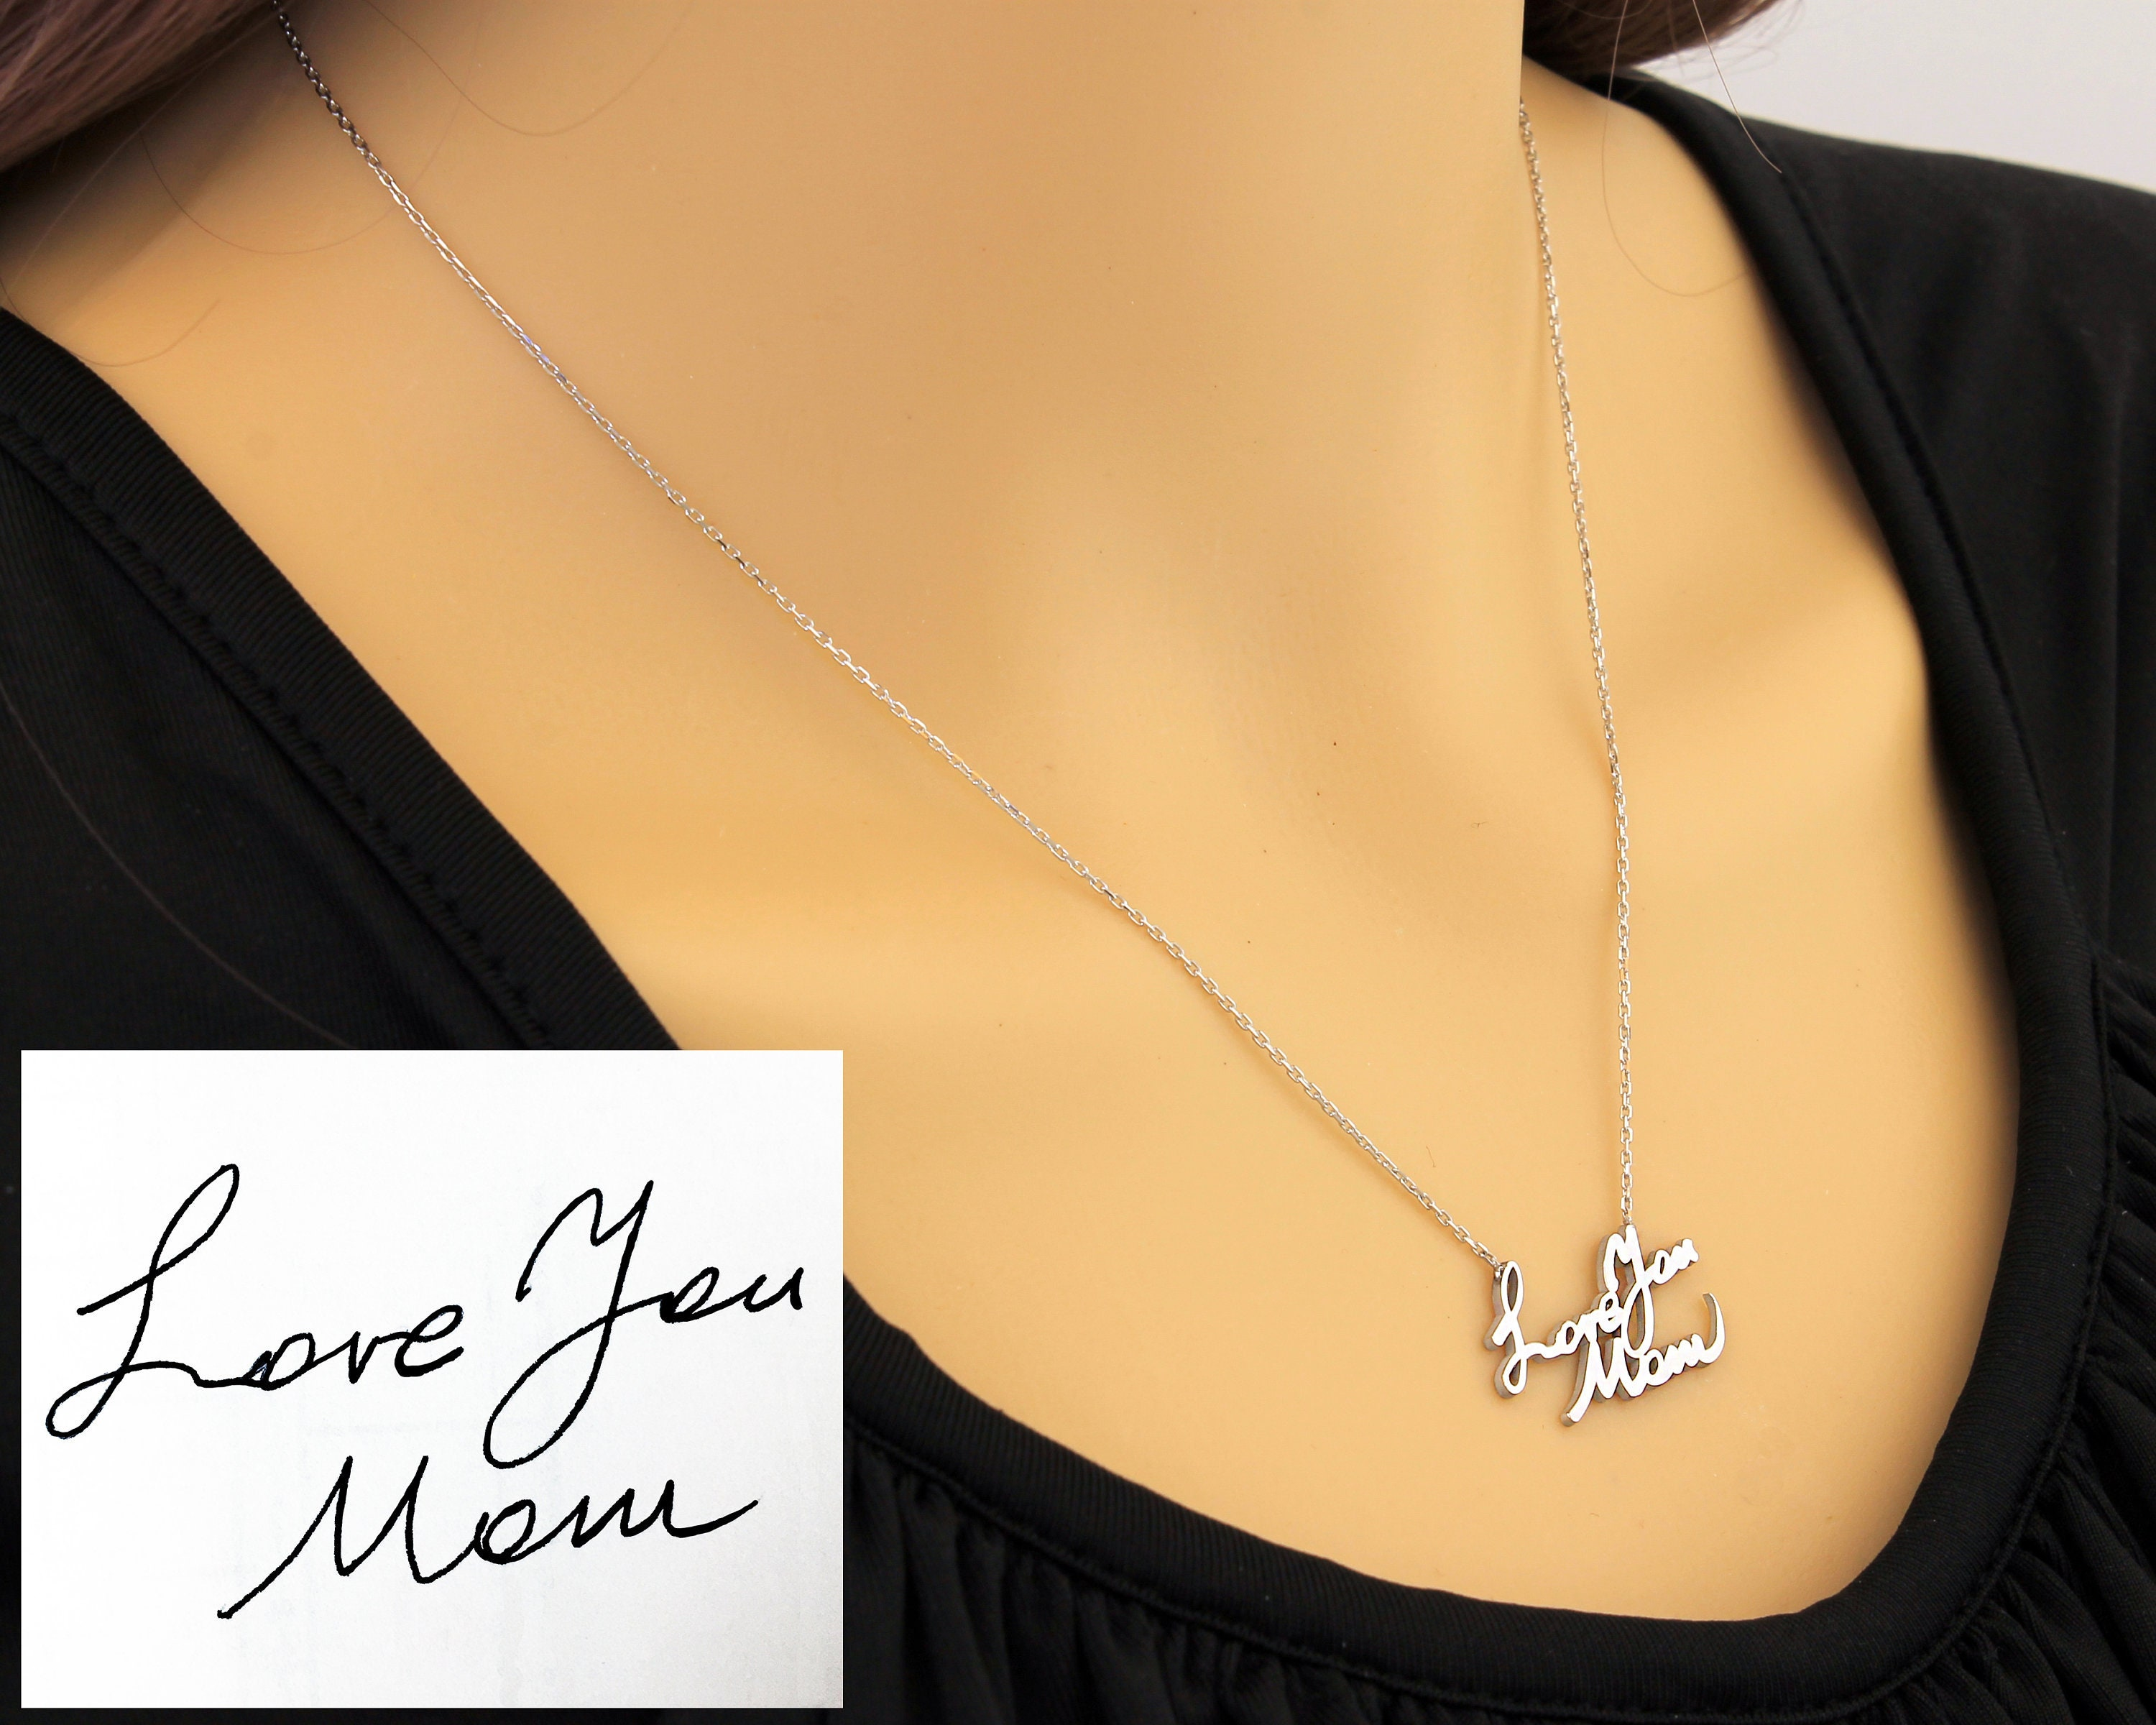 no stamped img small necklaces necklace is memories there metal remembrance pregnancy infant loss jewelry child baby too miscarriage memorial foot